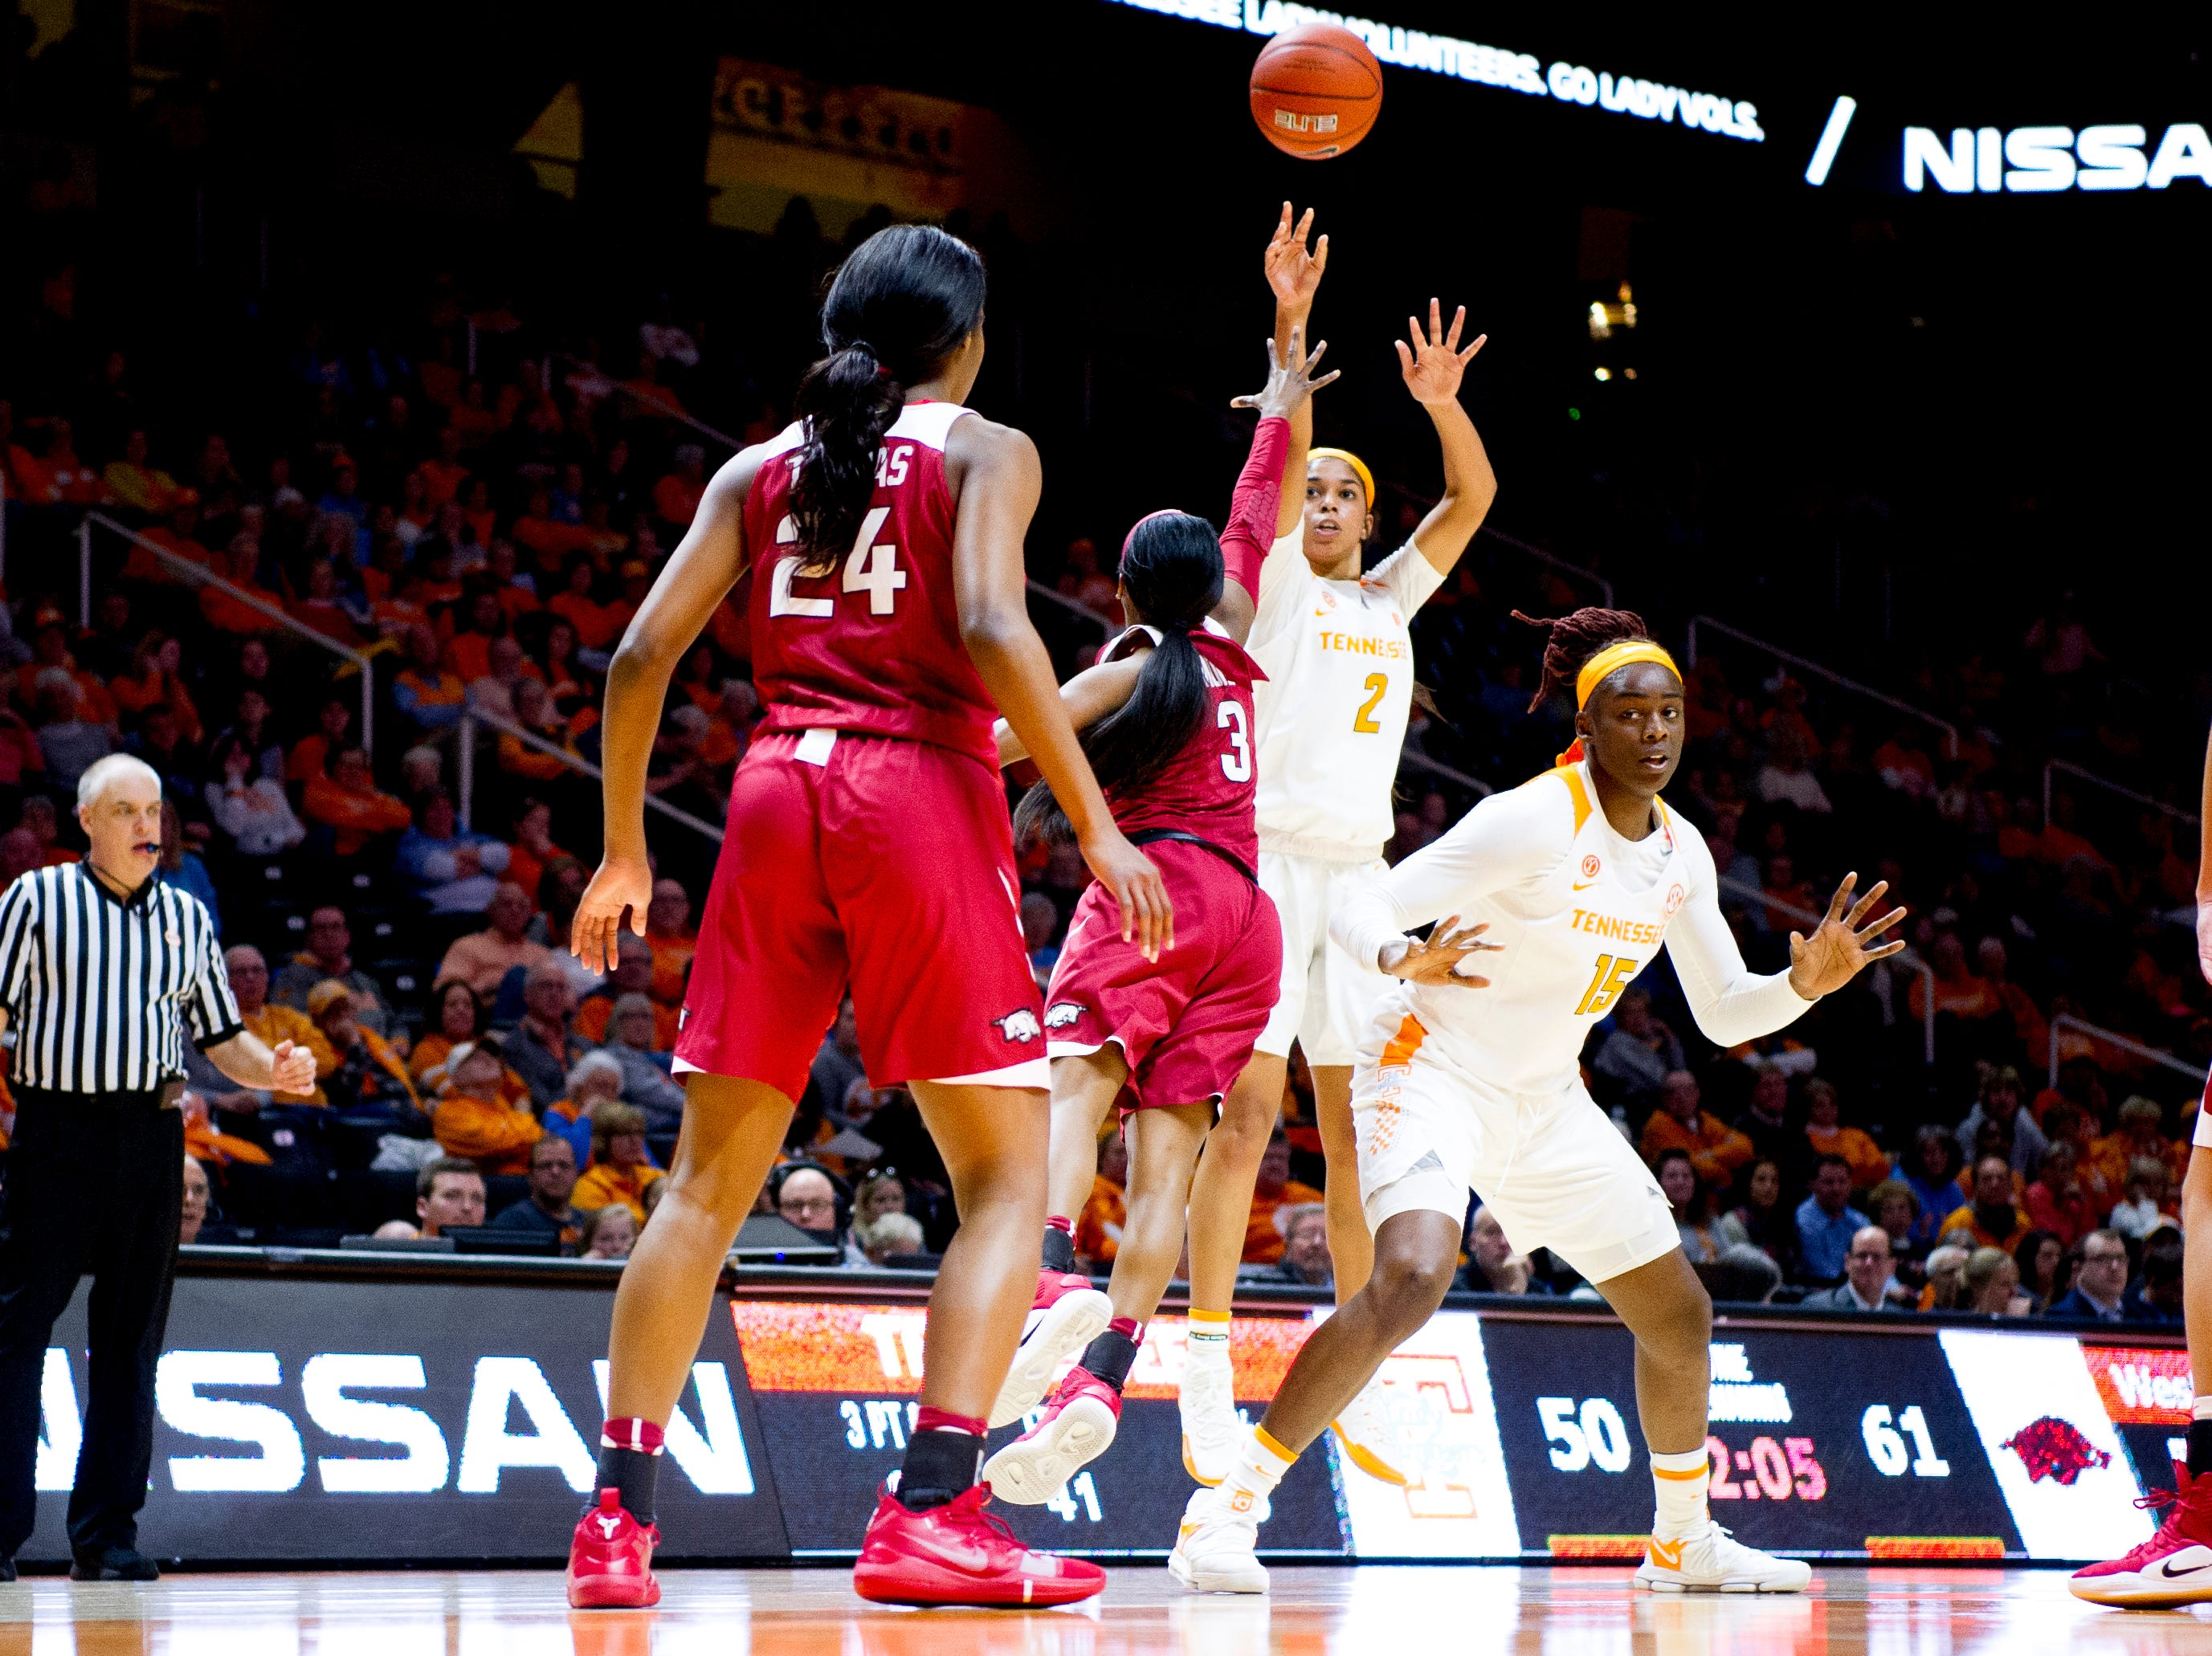 Tennessee guard Evina Westbrook (2) shoots the ball during a game between Tennessee and Arkansas at Thompson-Boling Arena in Knoxville, Tennessee on Monday, January 21, 2019.